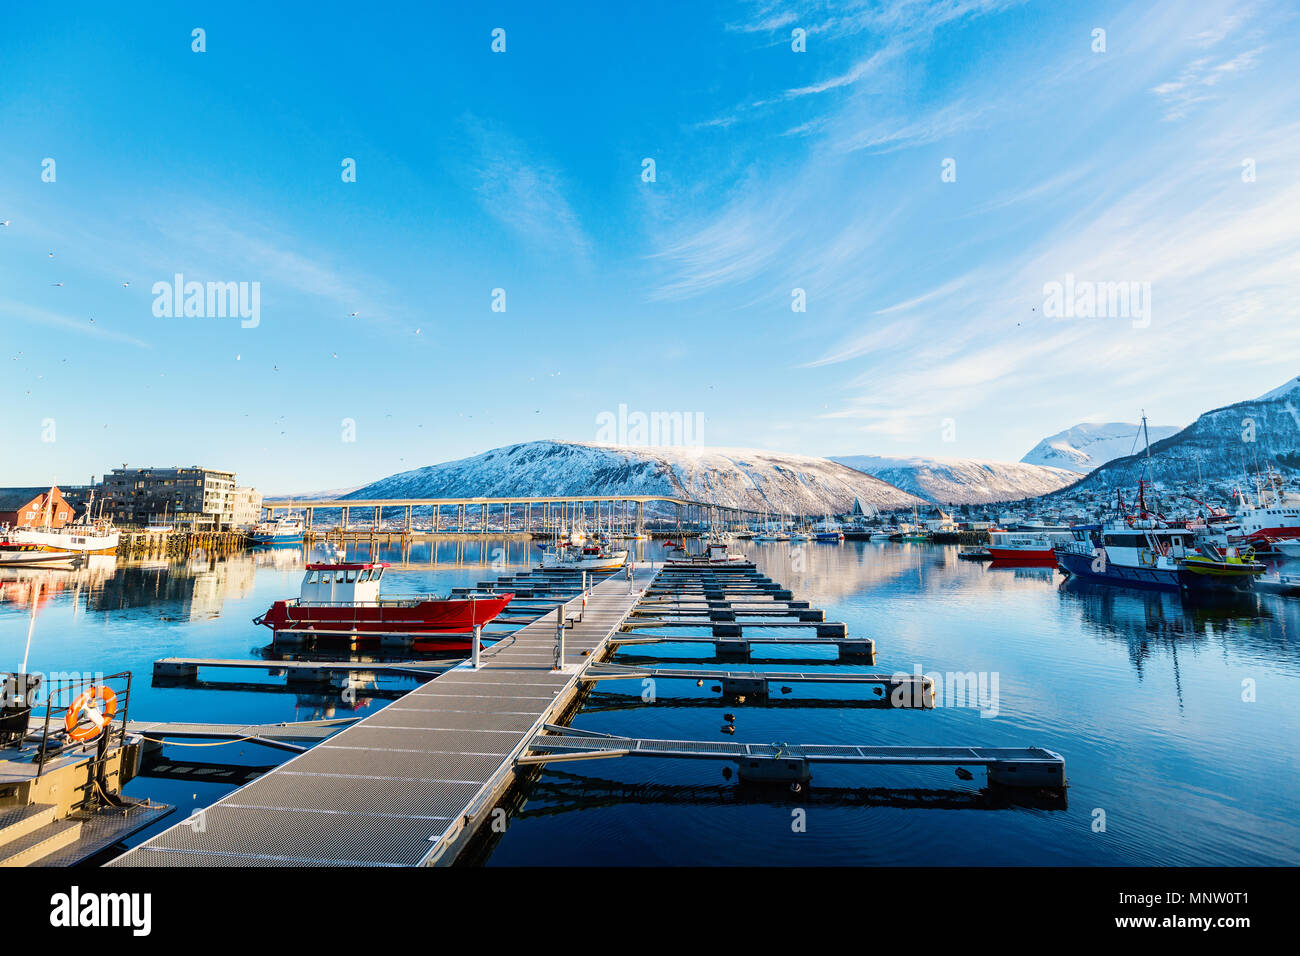 Beautiful town of Tromso in Northern Norway - Stock Image